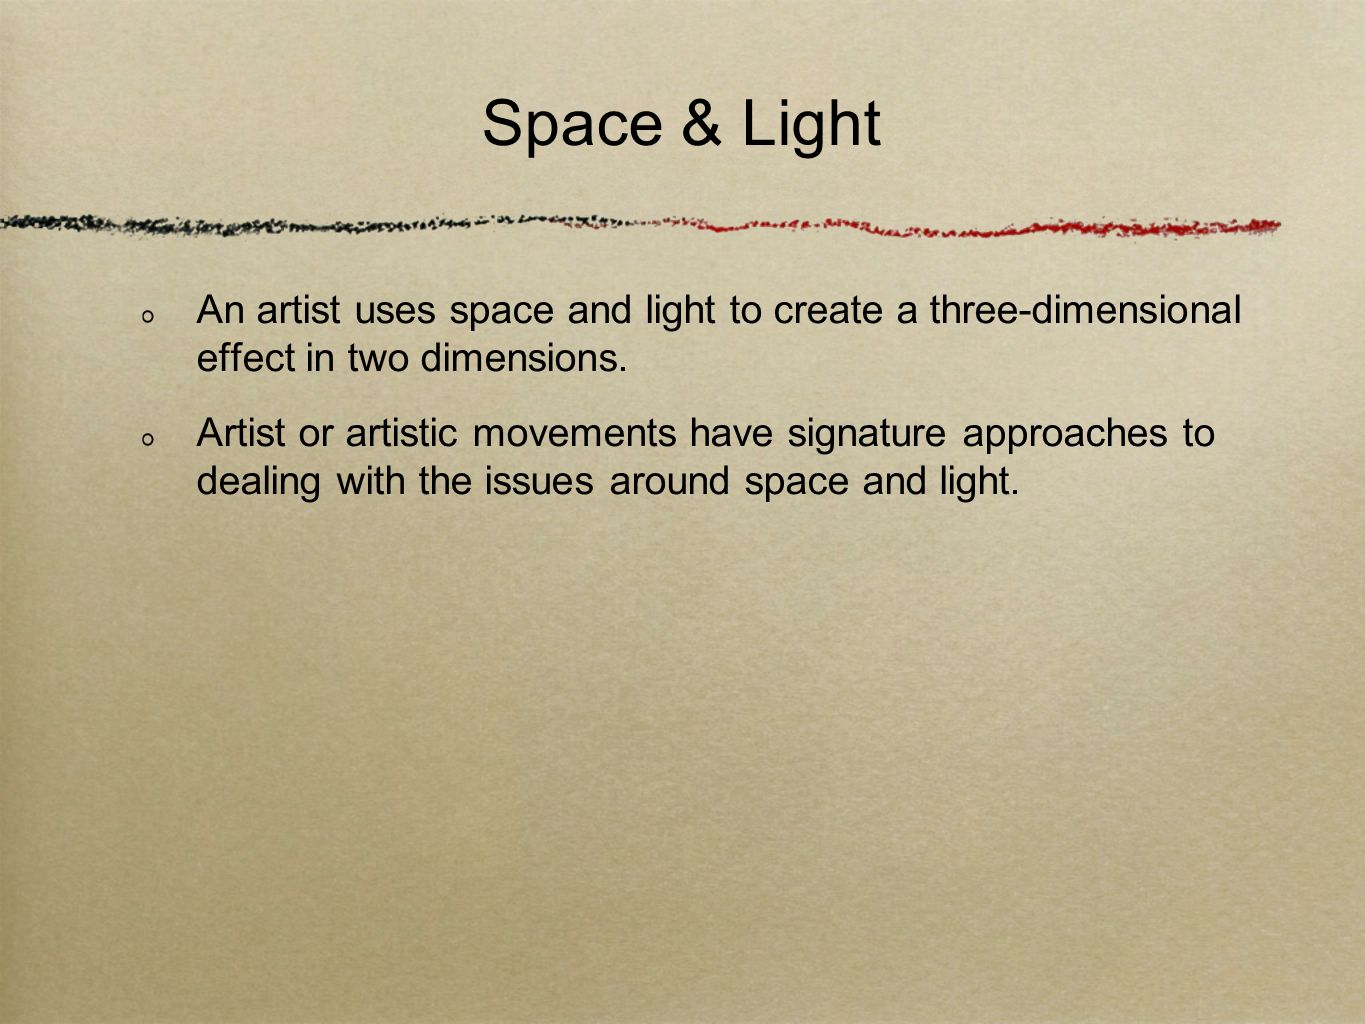 Space & Light An artist uses space and light to create a three-dimensional effect in two dimensions. Artist or artistic movements have signature appro